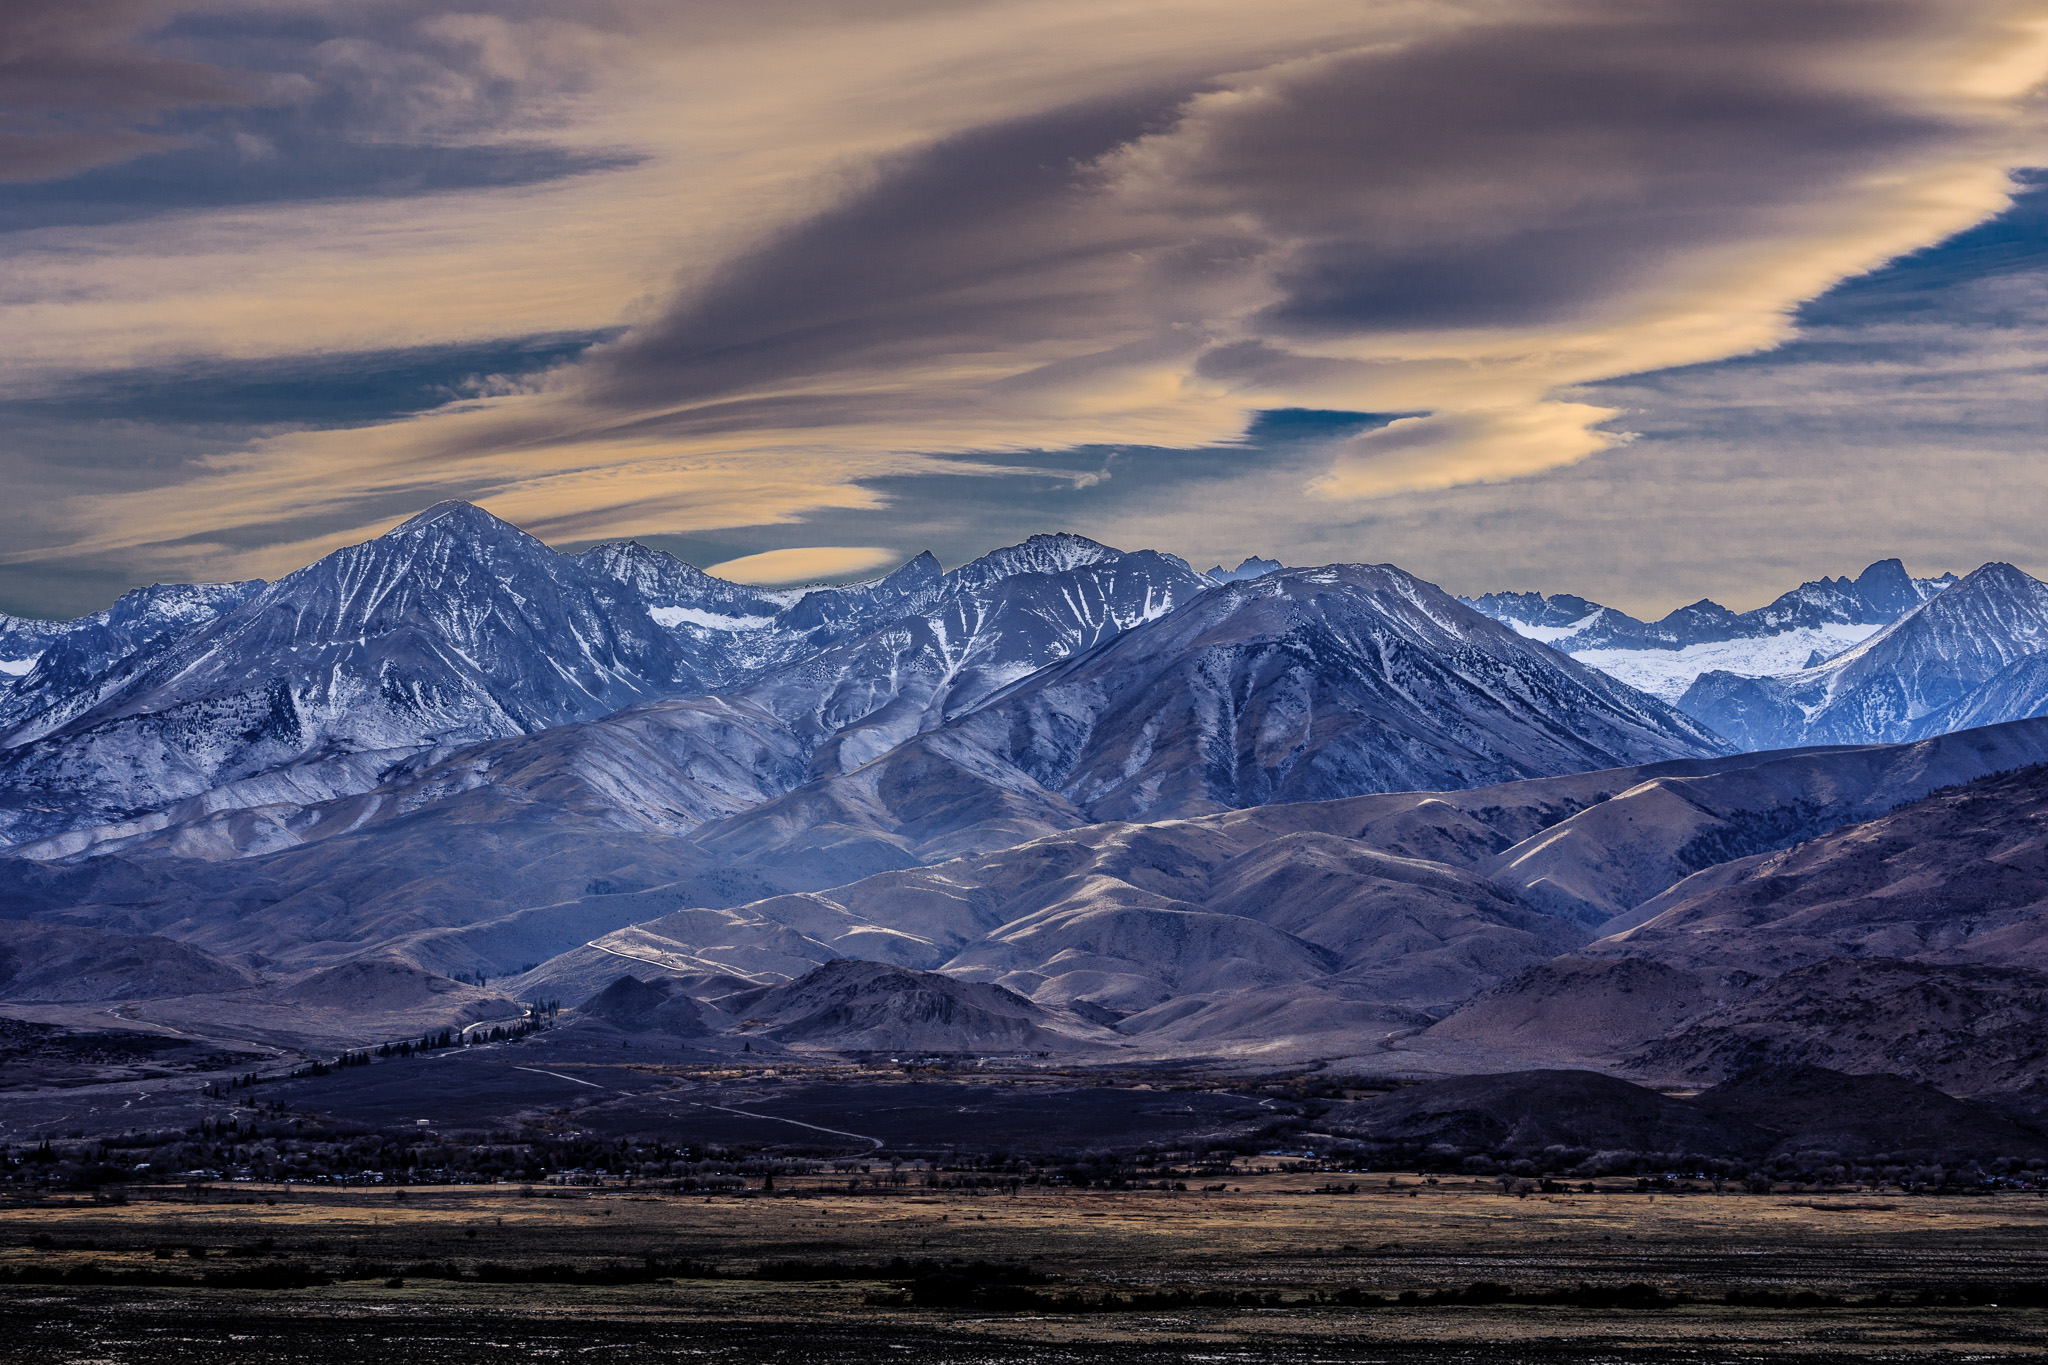 Eastern Sierra Neveda